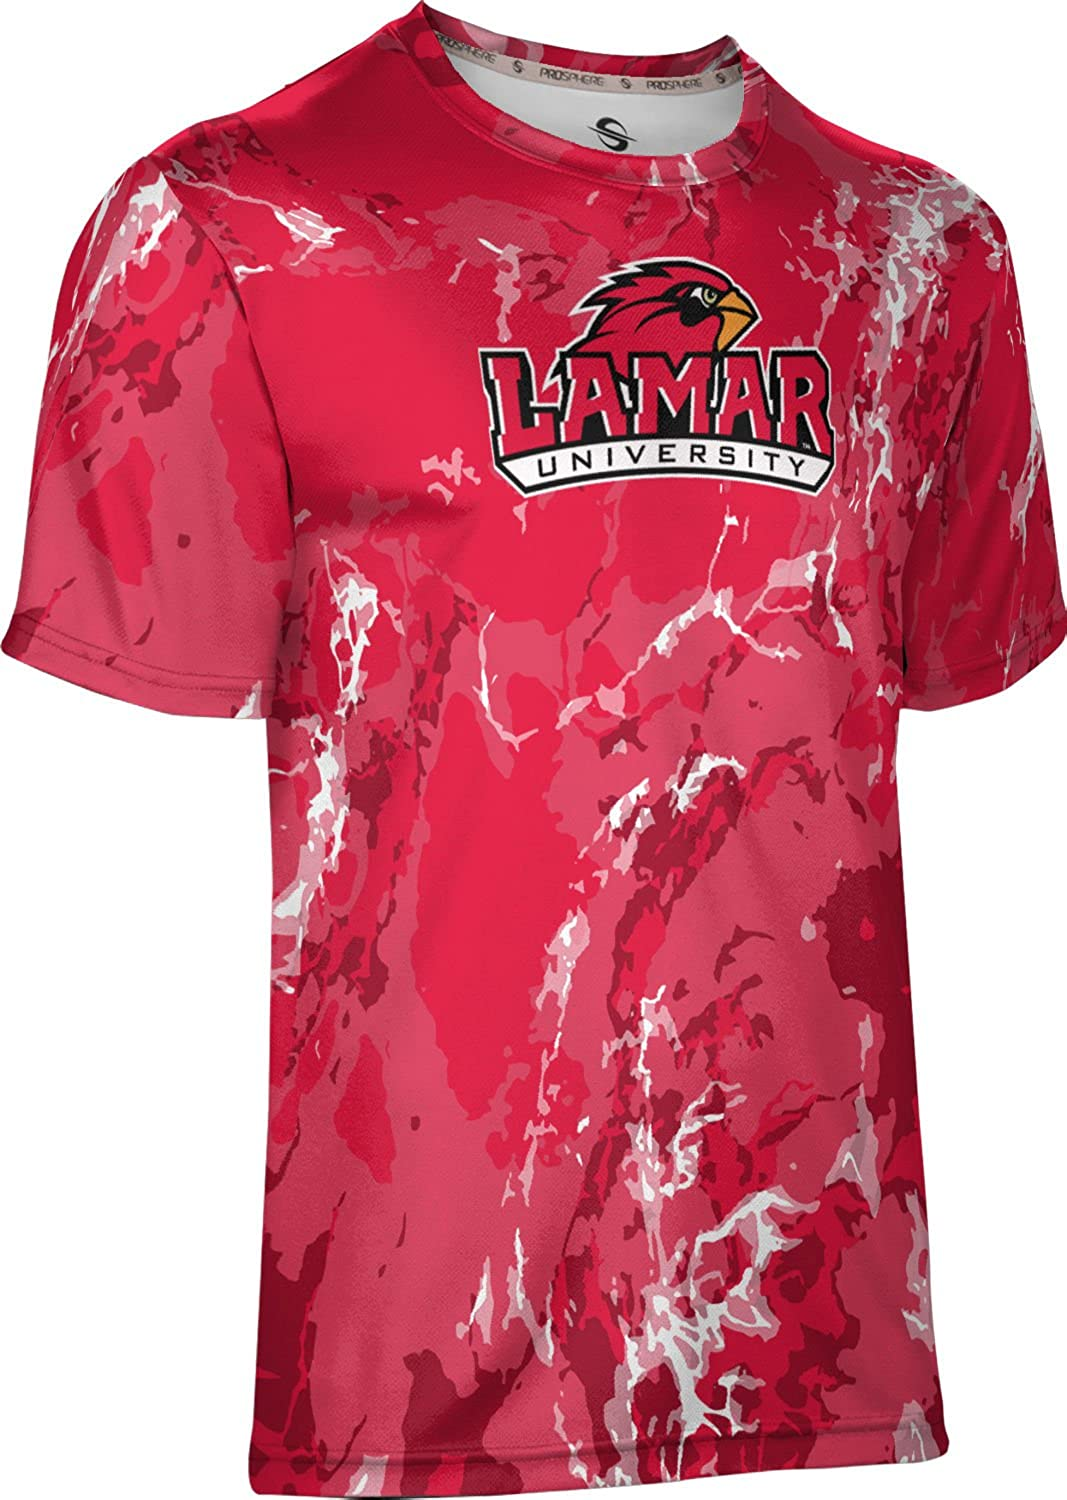 ProSphere Lamar University Boys Performance T-Shirt Marble